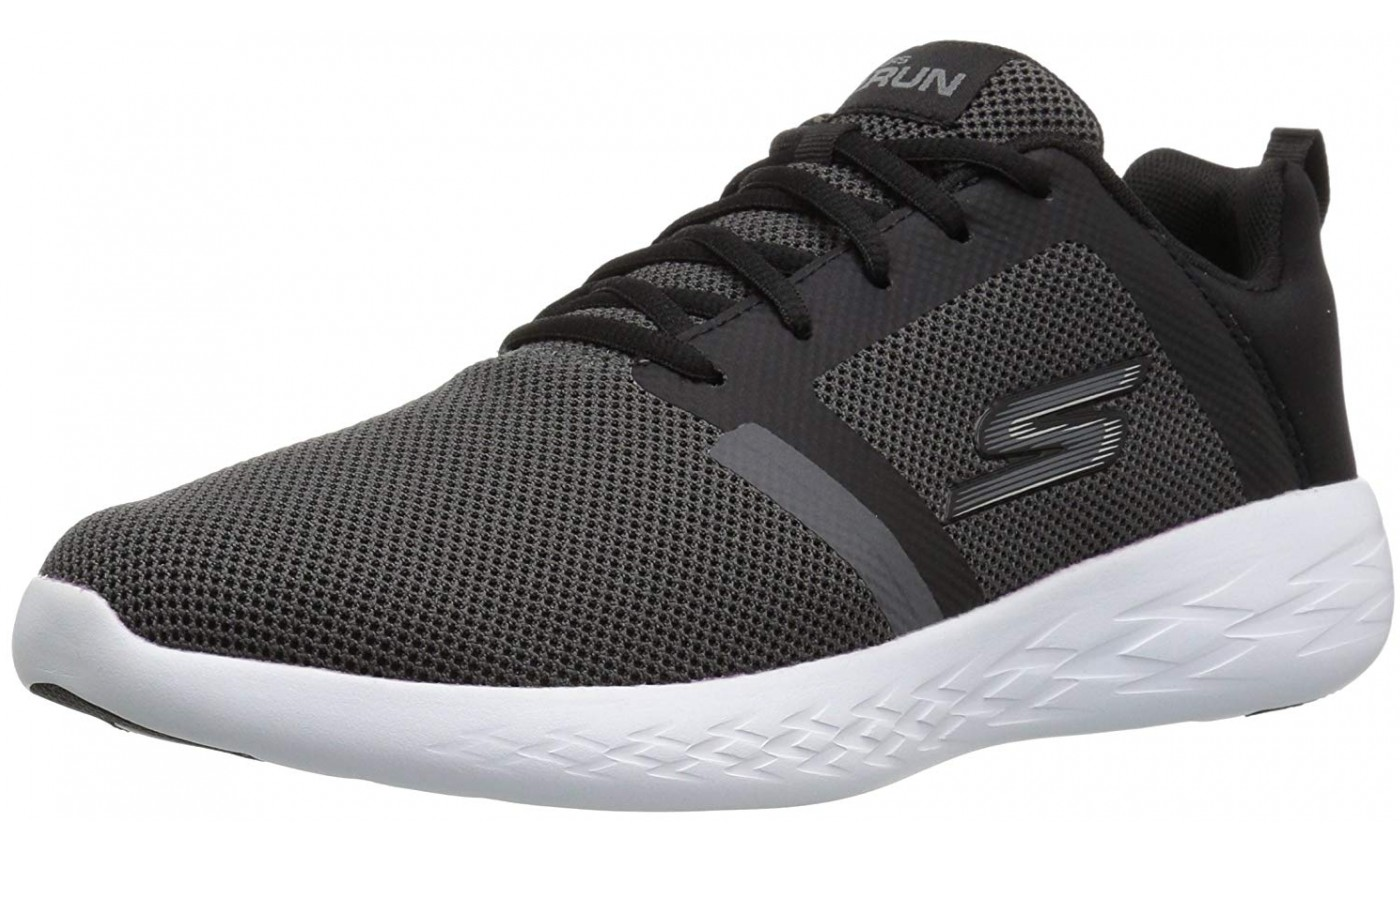 The Skechers Go Run can be used for running and going out and about.